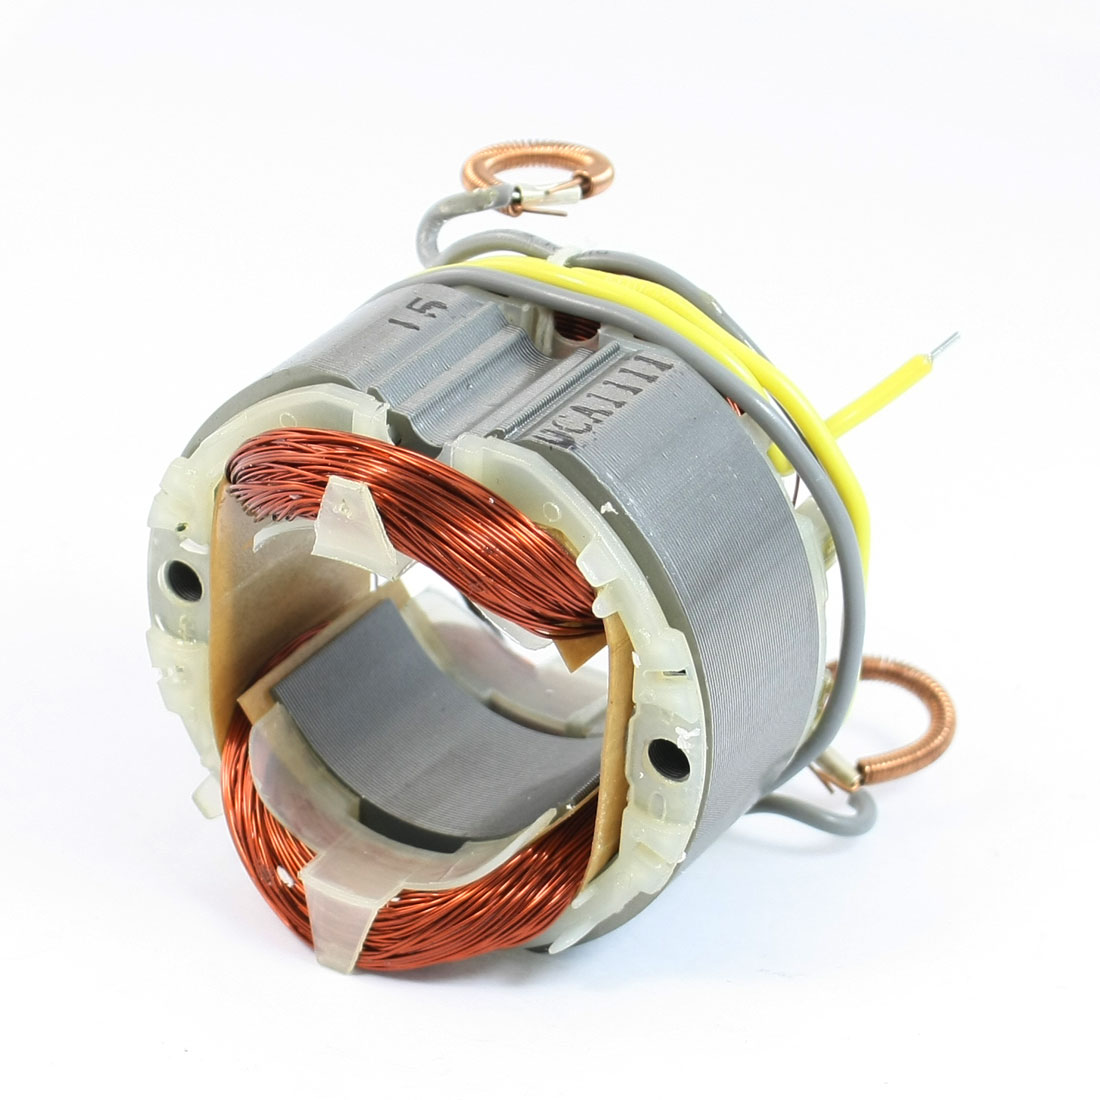 AC220V Electric Blower 42mm Core 4 Cable Motor Armature Stator for Makita UB1100